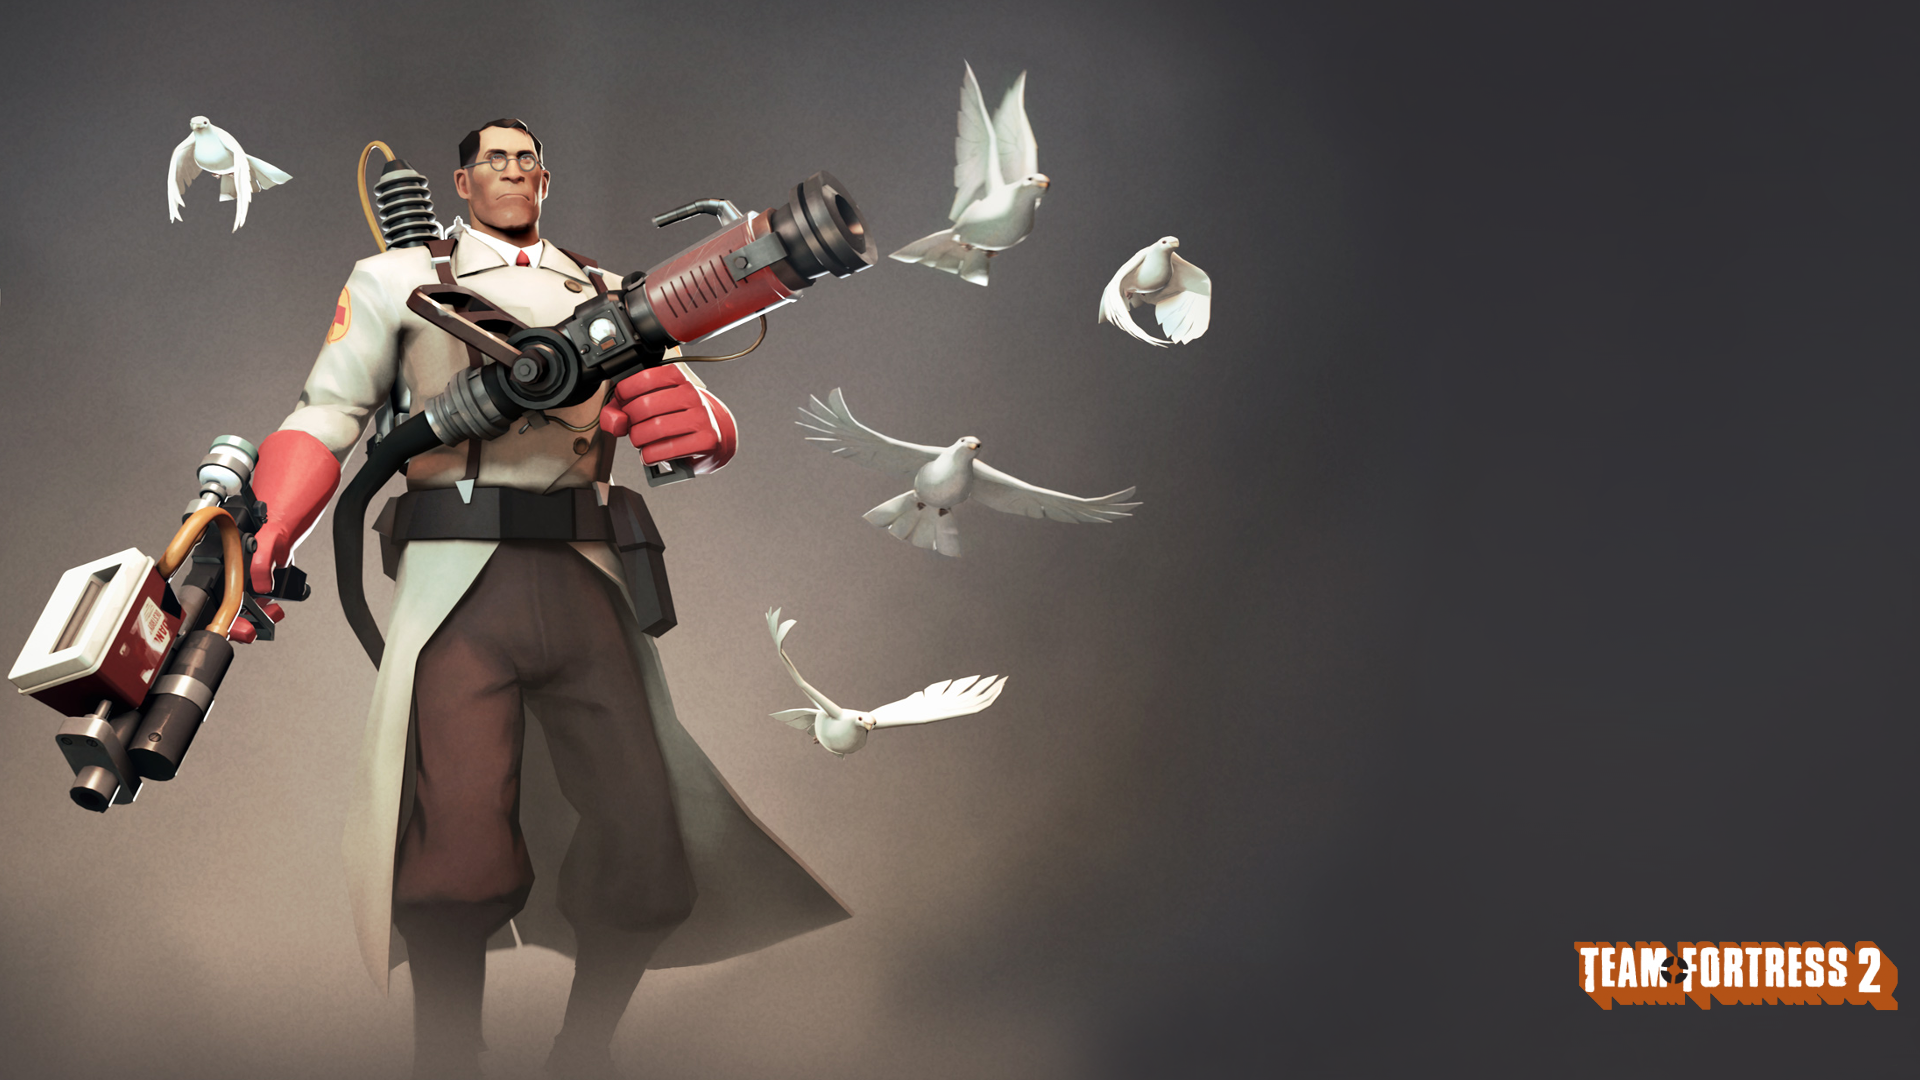 team fortress 2 tf2 images tf2 medic hd wallpaper and